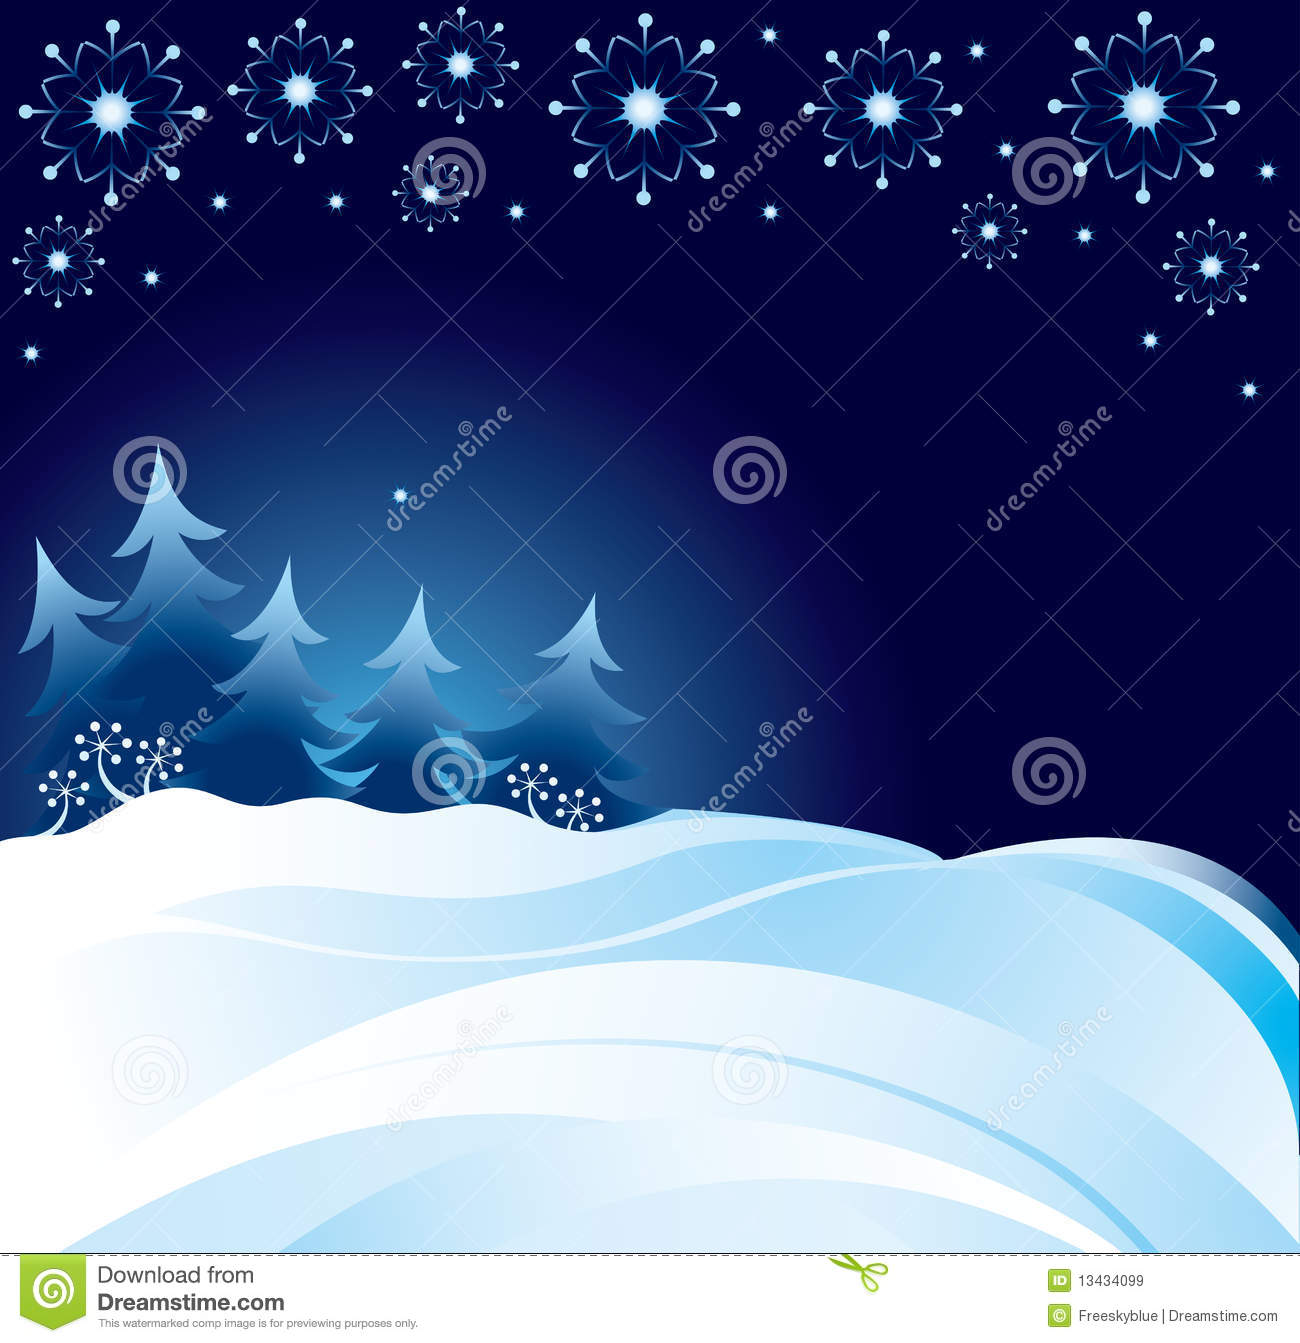 Free Christmas Falling Snow Wallpaper Snow At Night Royalty Free Stock Images Image 13434099